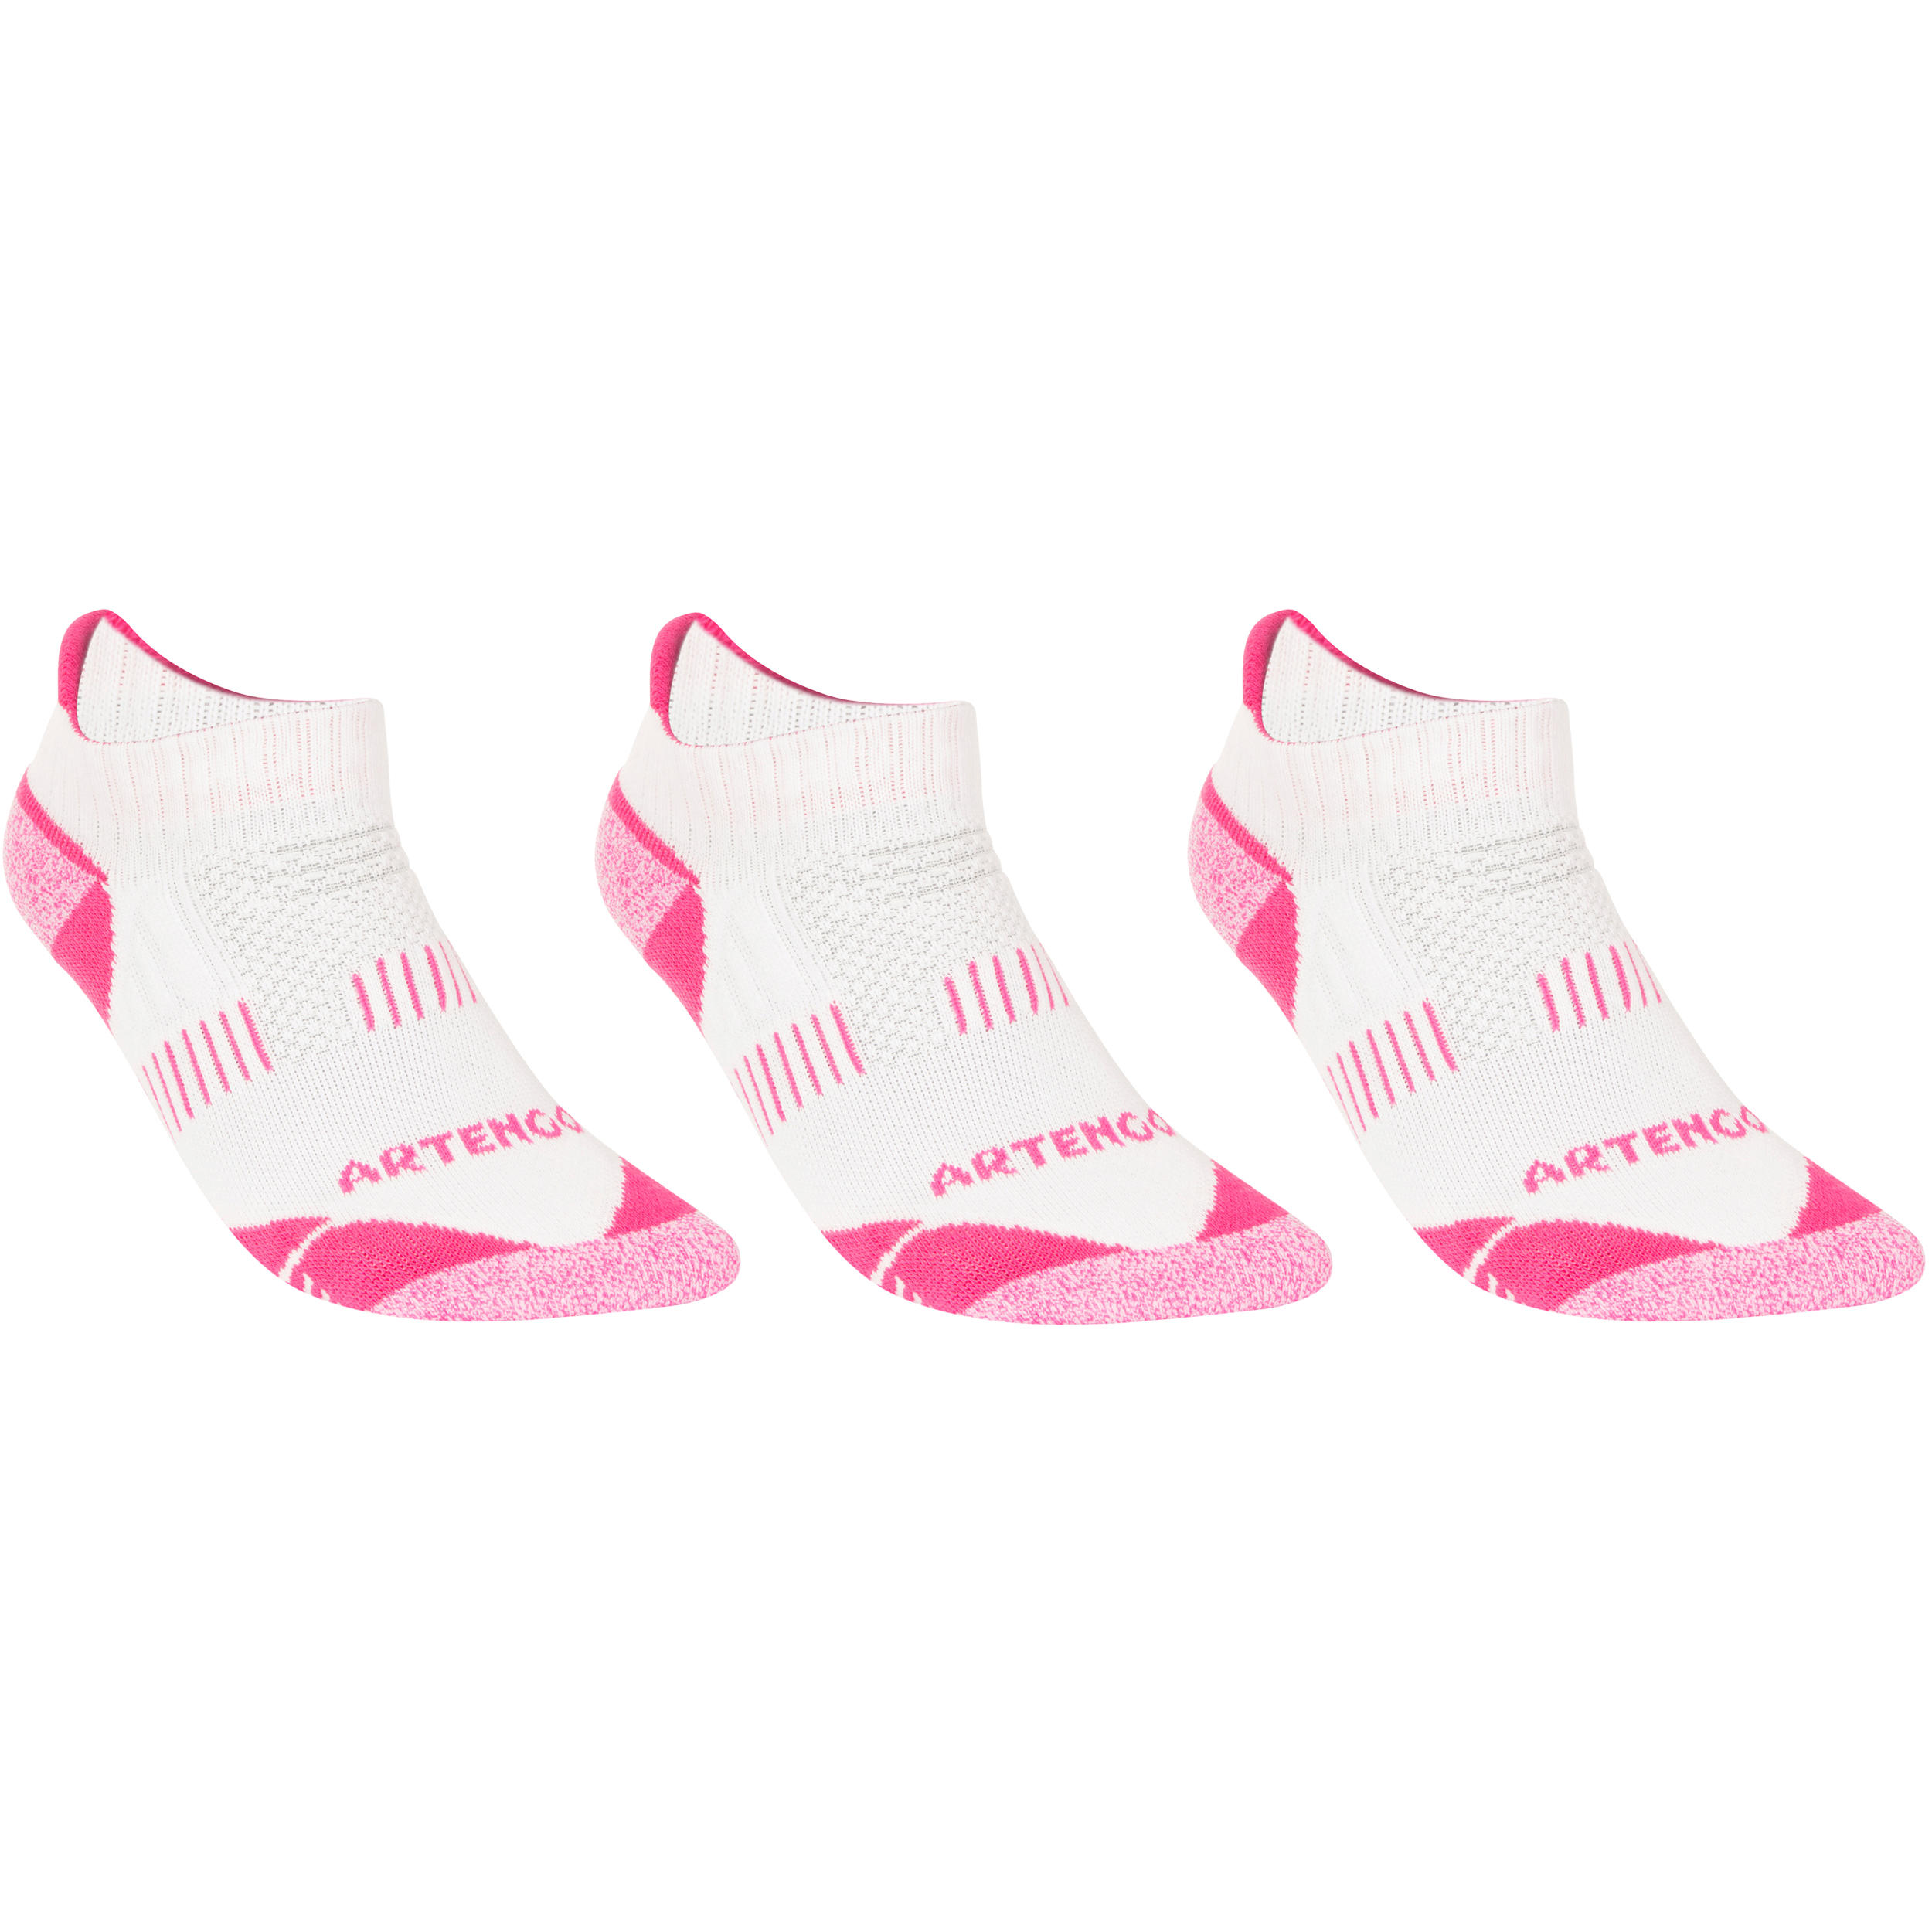 RS 900 Adult Low Sports Socks Tri-Pack - White and Pink